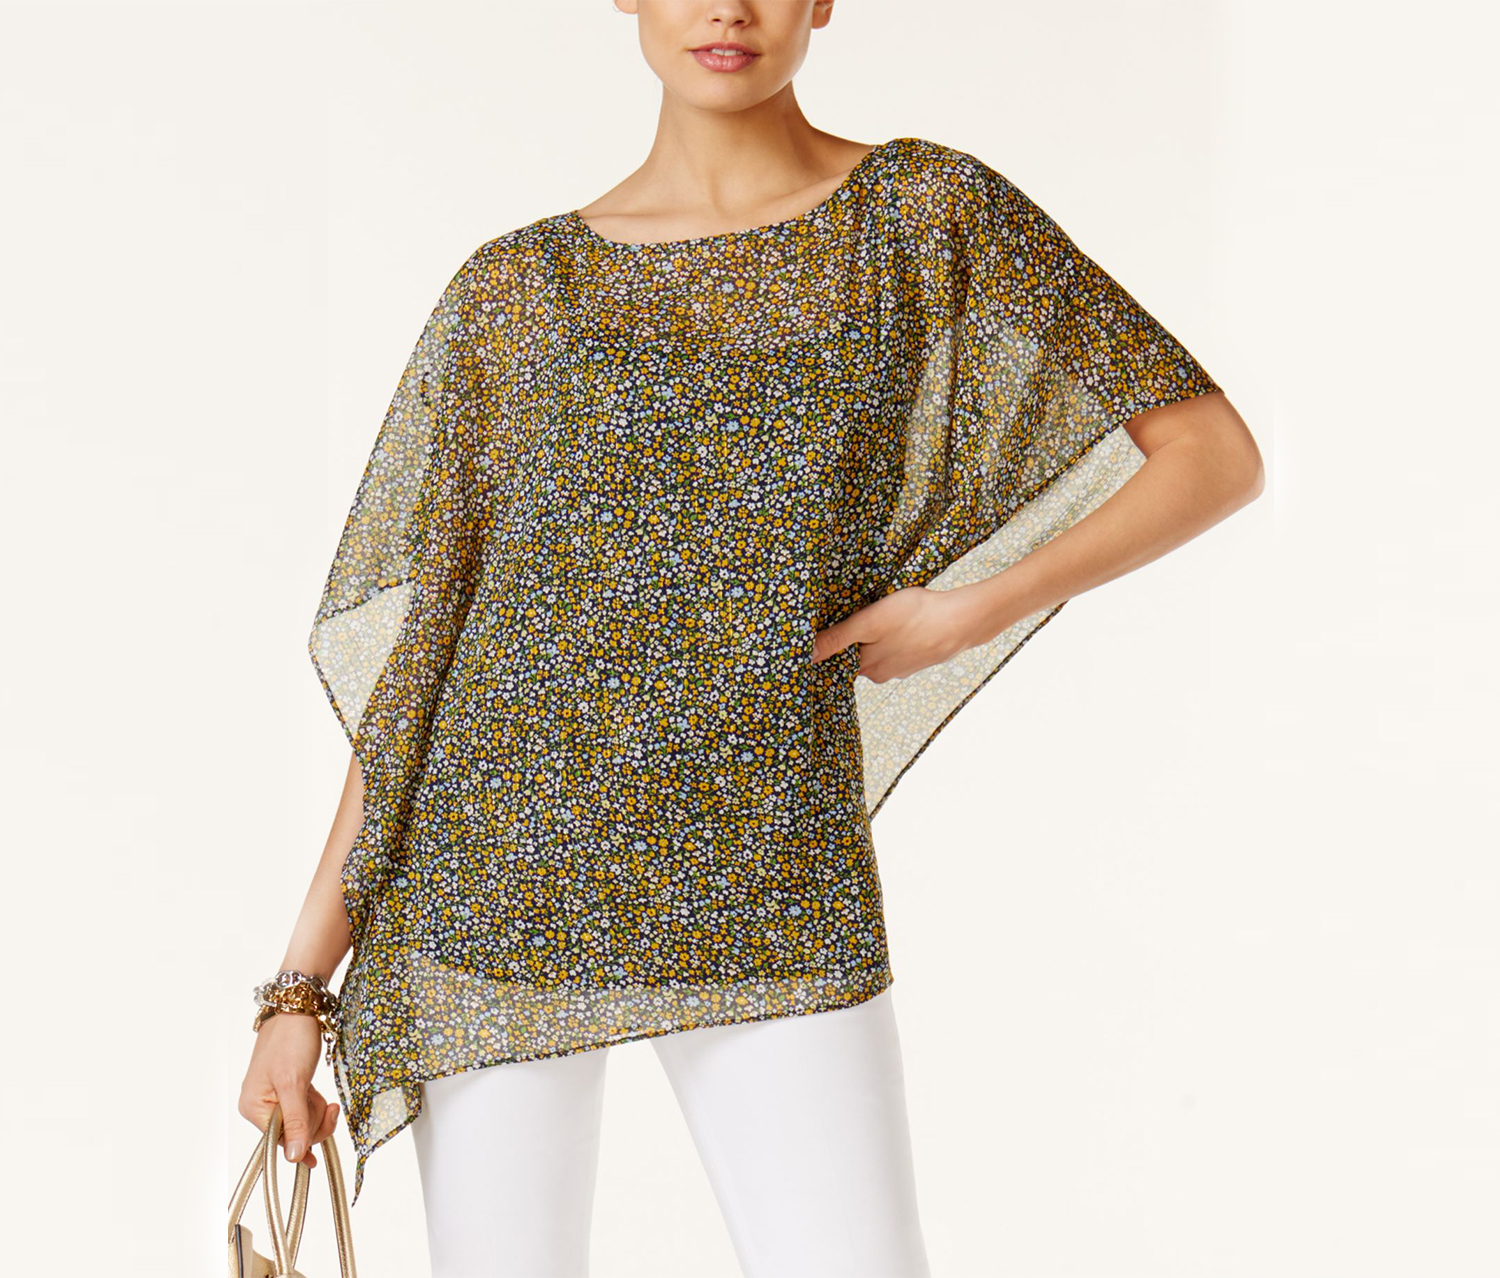 Michael Kors Women's Chiffon Metallic Poncho Top, Taxi Yellow